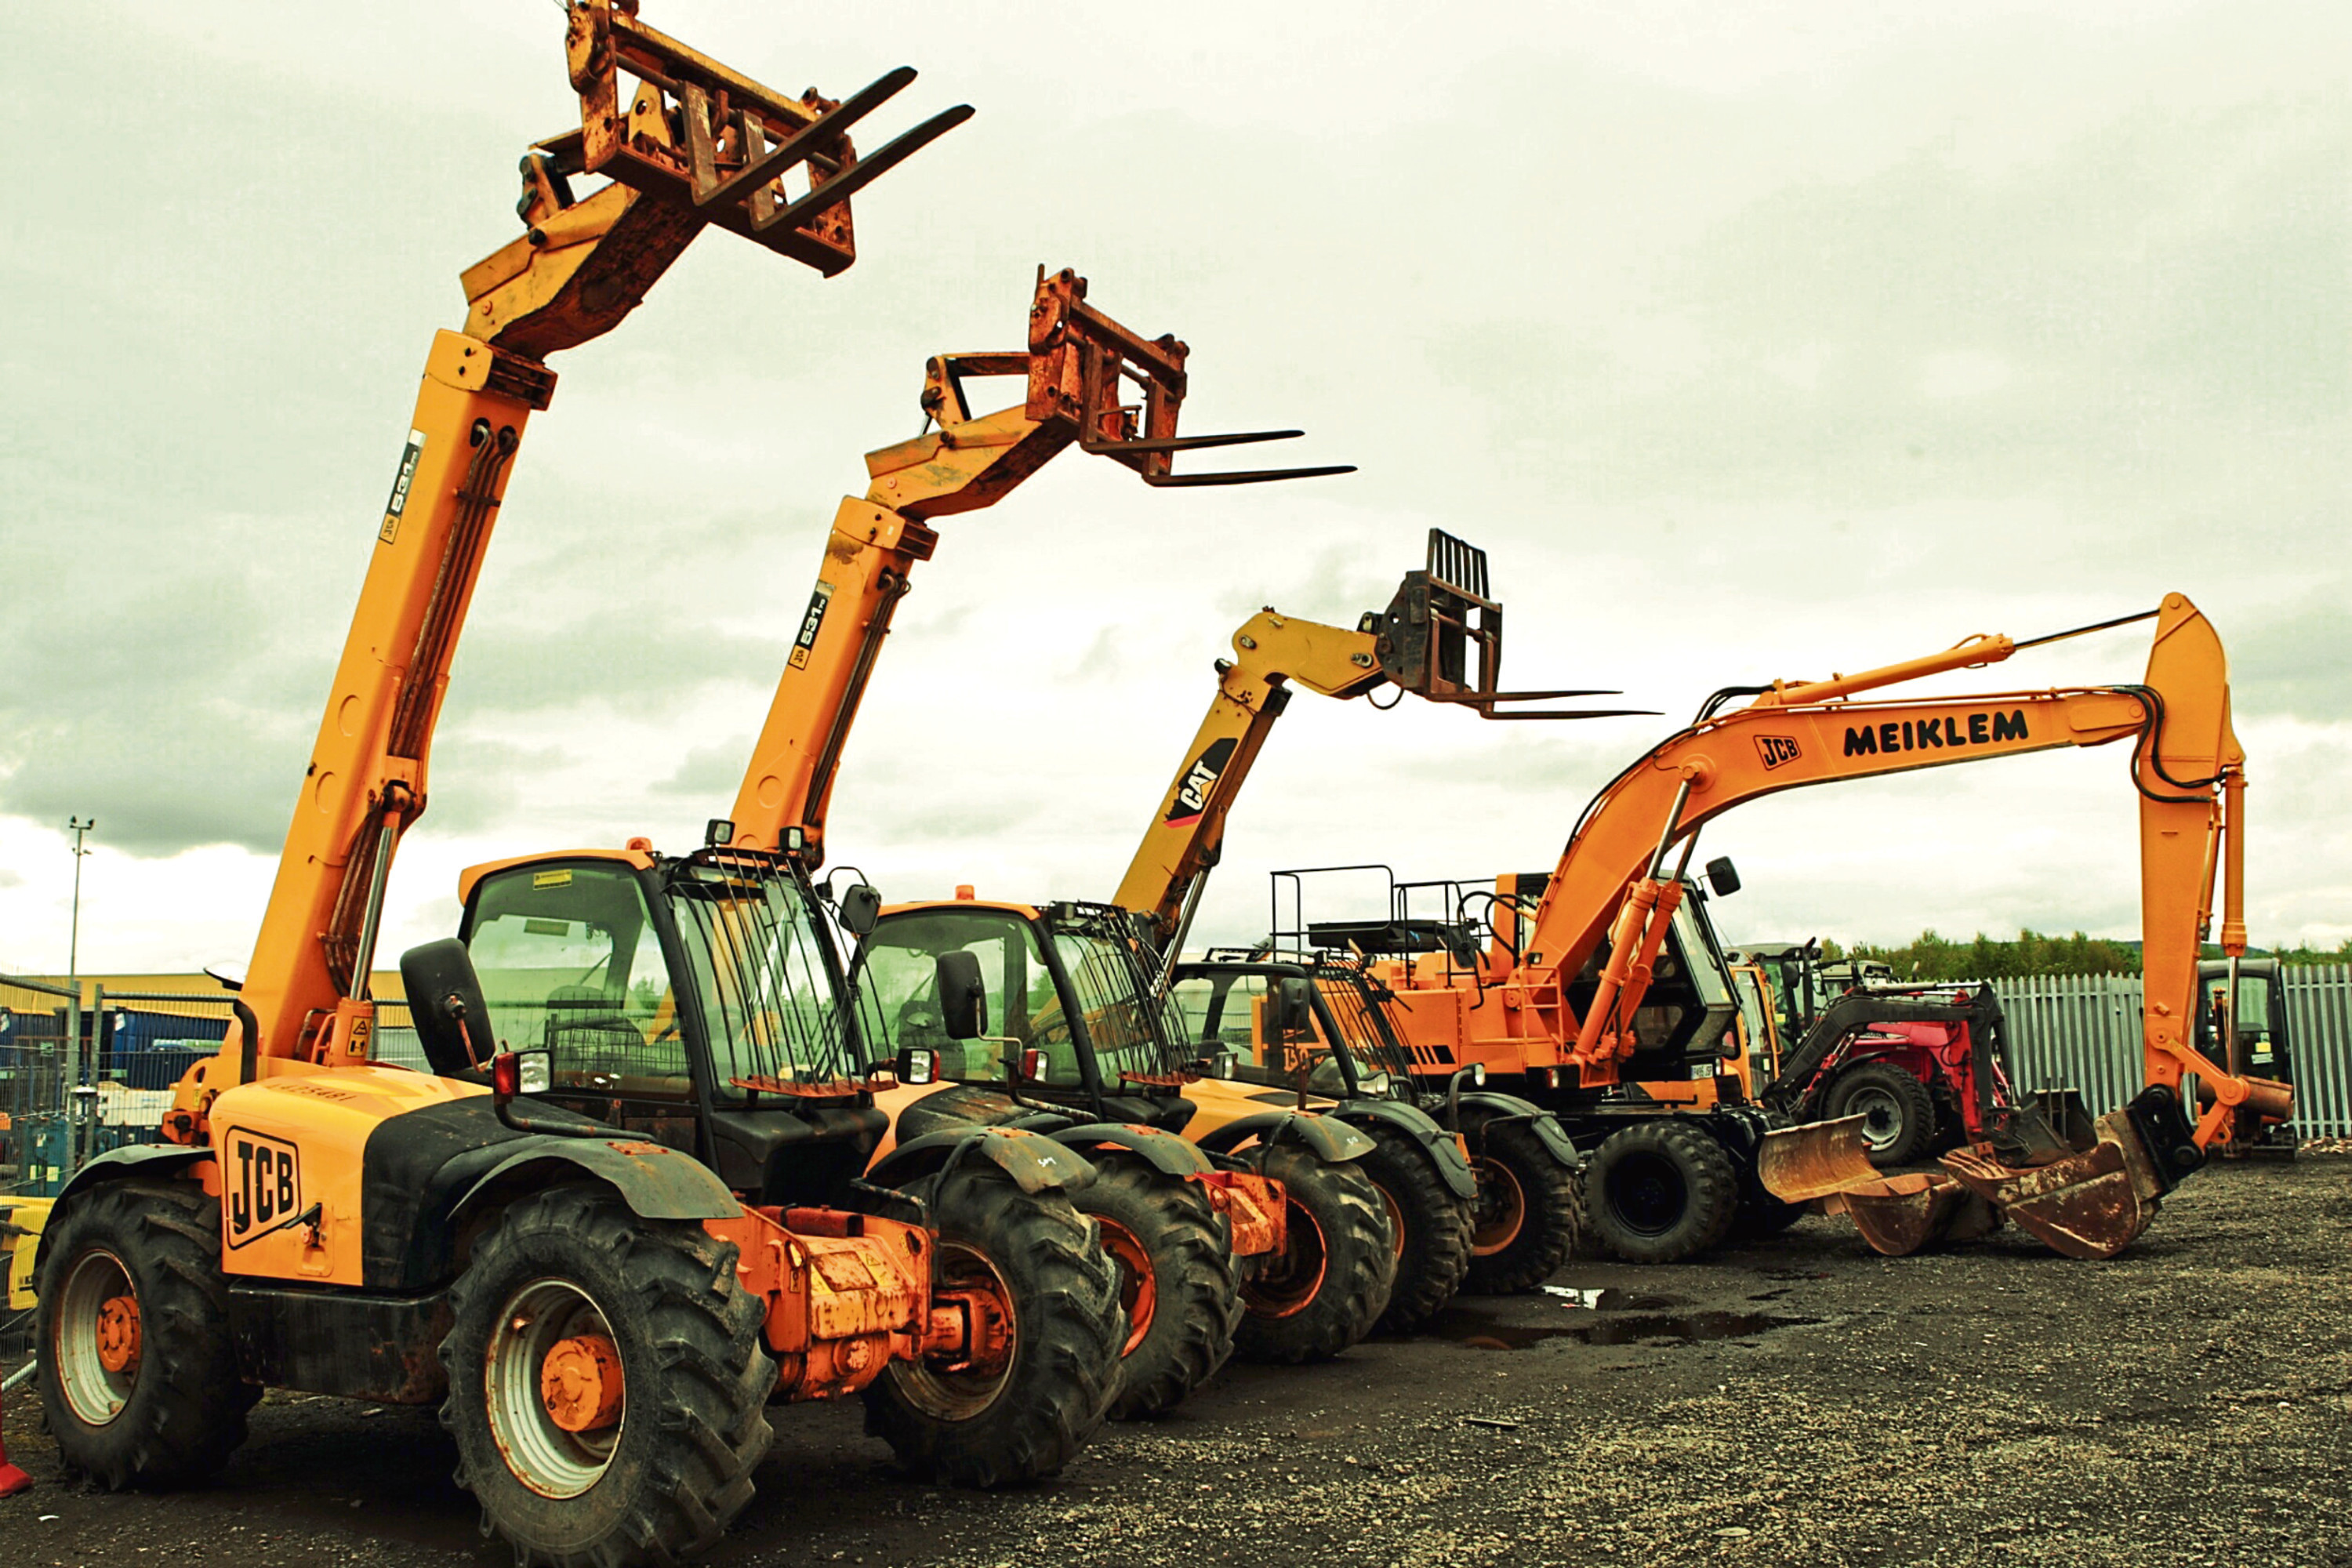 Morris Leslie group's fleet of industrial vehicles extends to more than 5,000 assets.